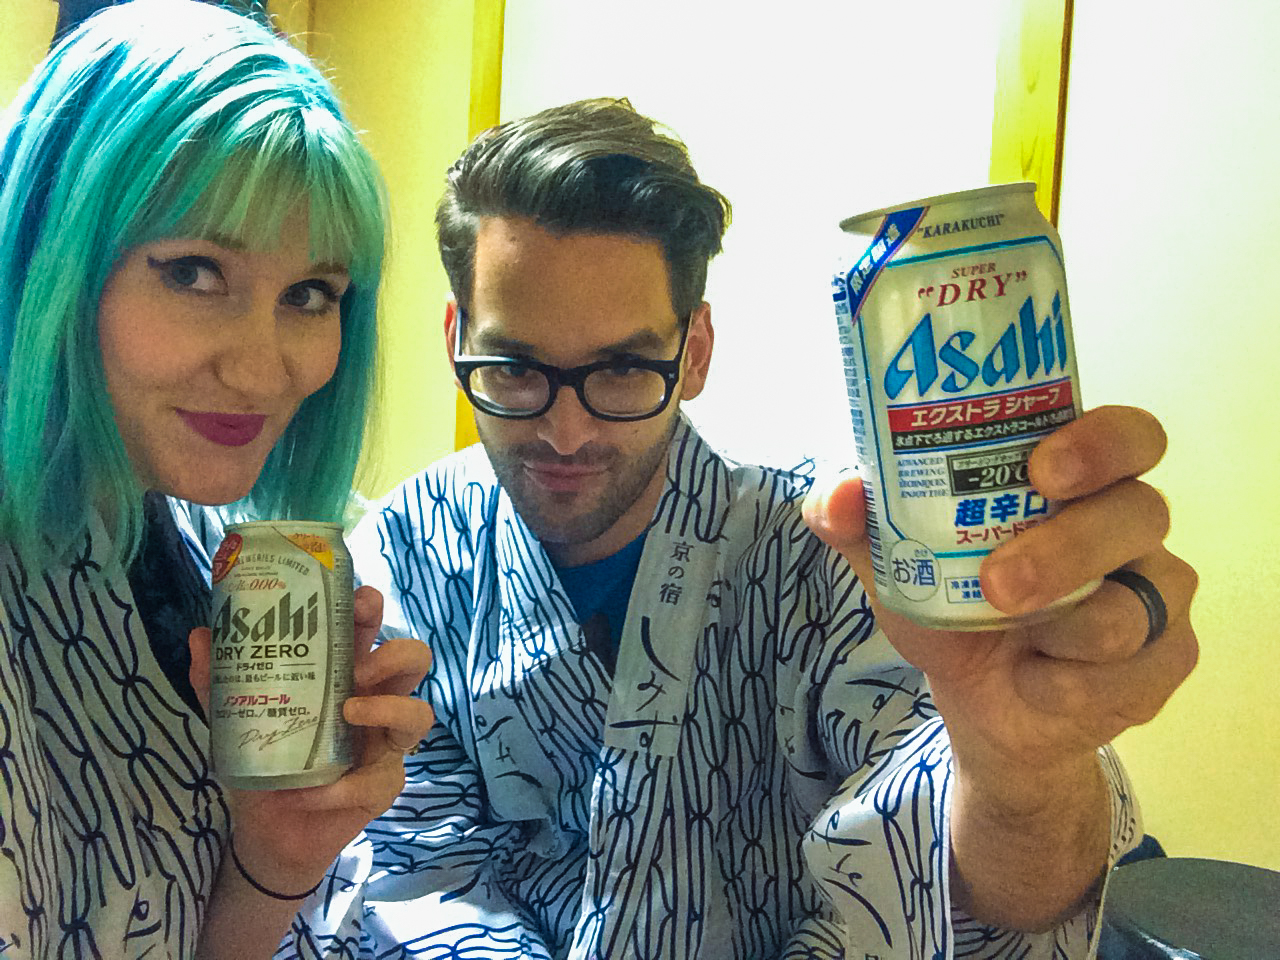 Us in our Ryokan provided PJs